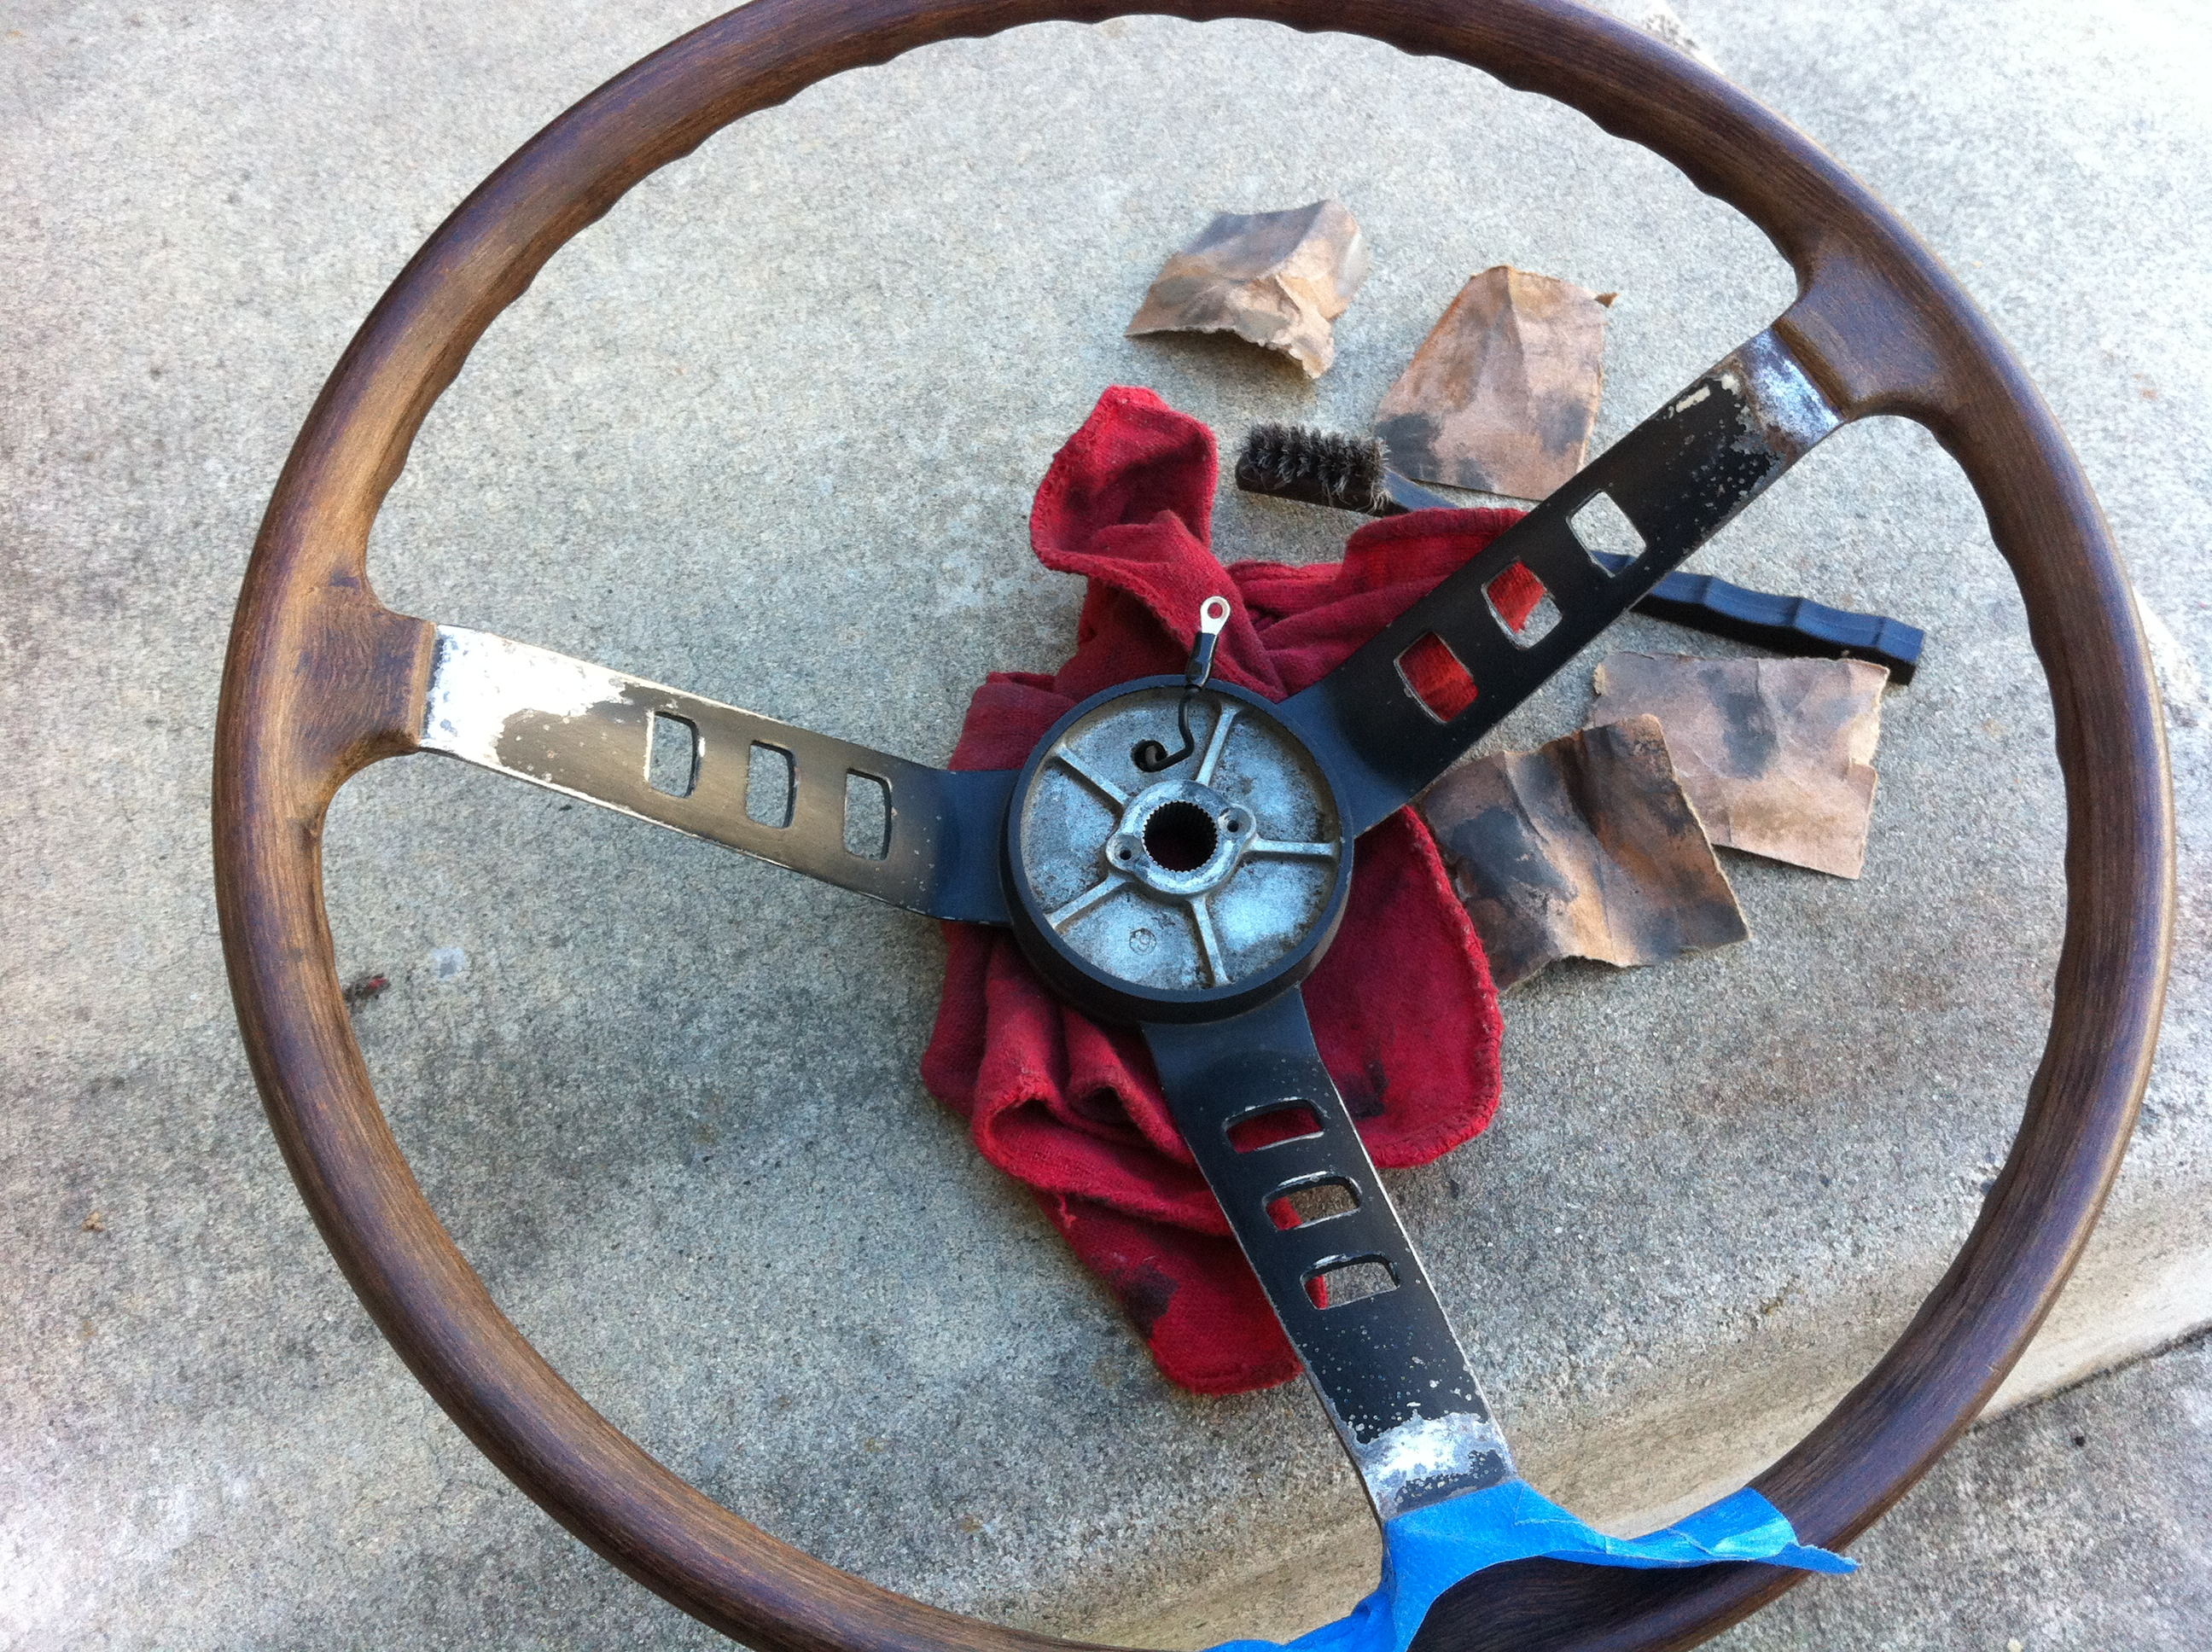 240z Steering Wheel Refurbished Part 1 The Daily Datsun